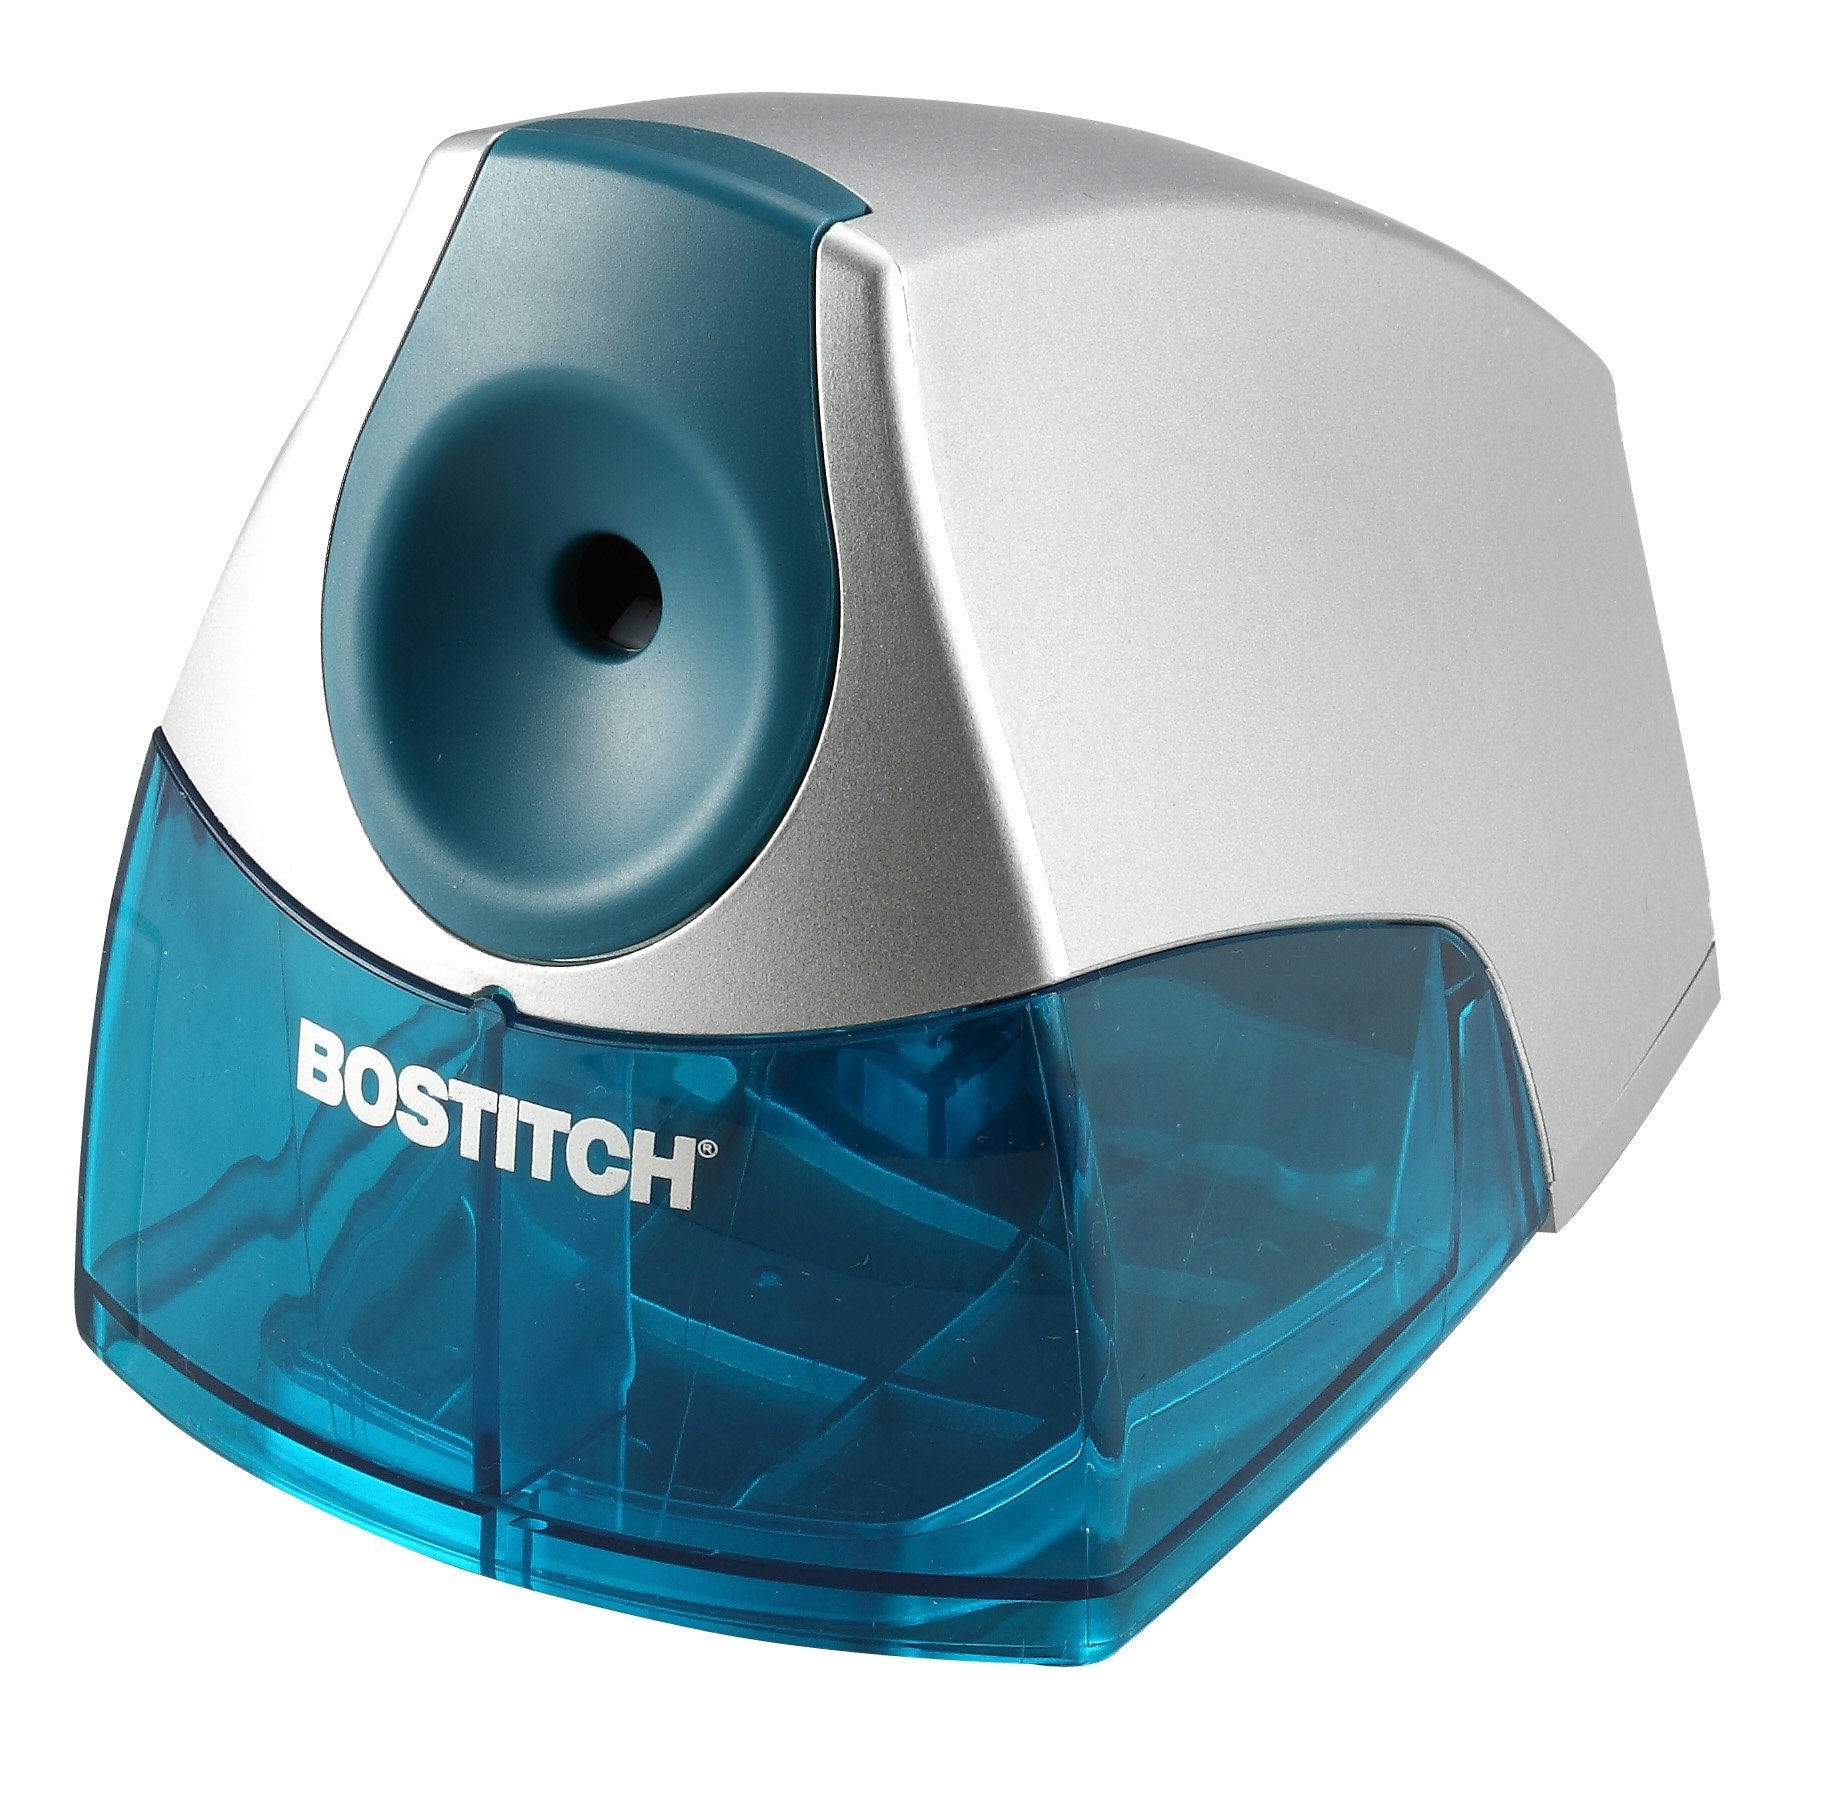 Bostitch Personal Electric Pencil Sharpener, Blue (EPS4-BLUE) by Bostitch Office